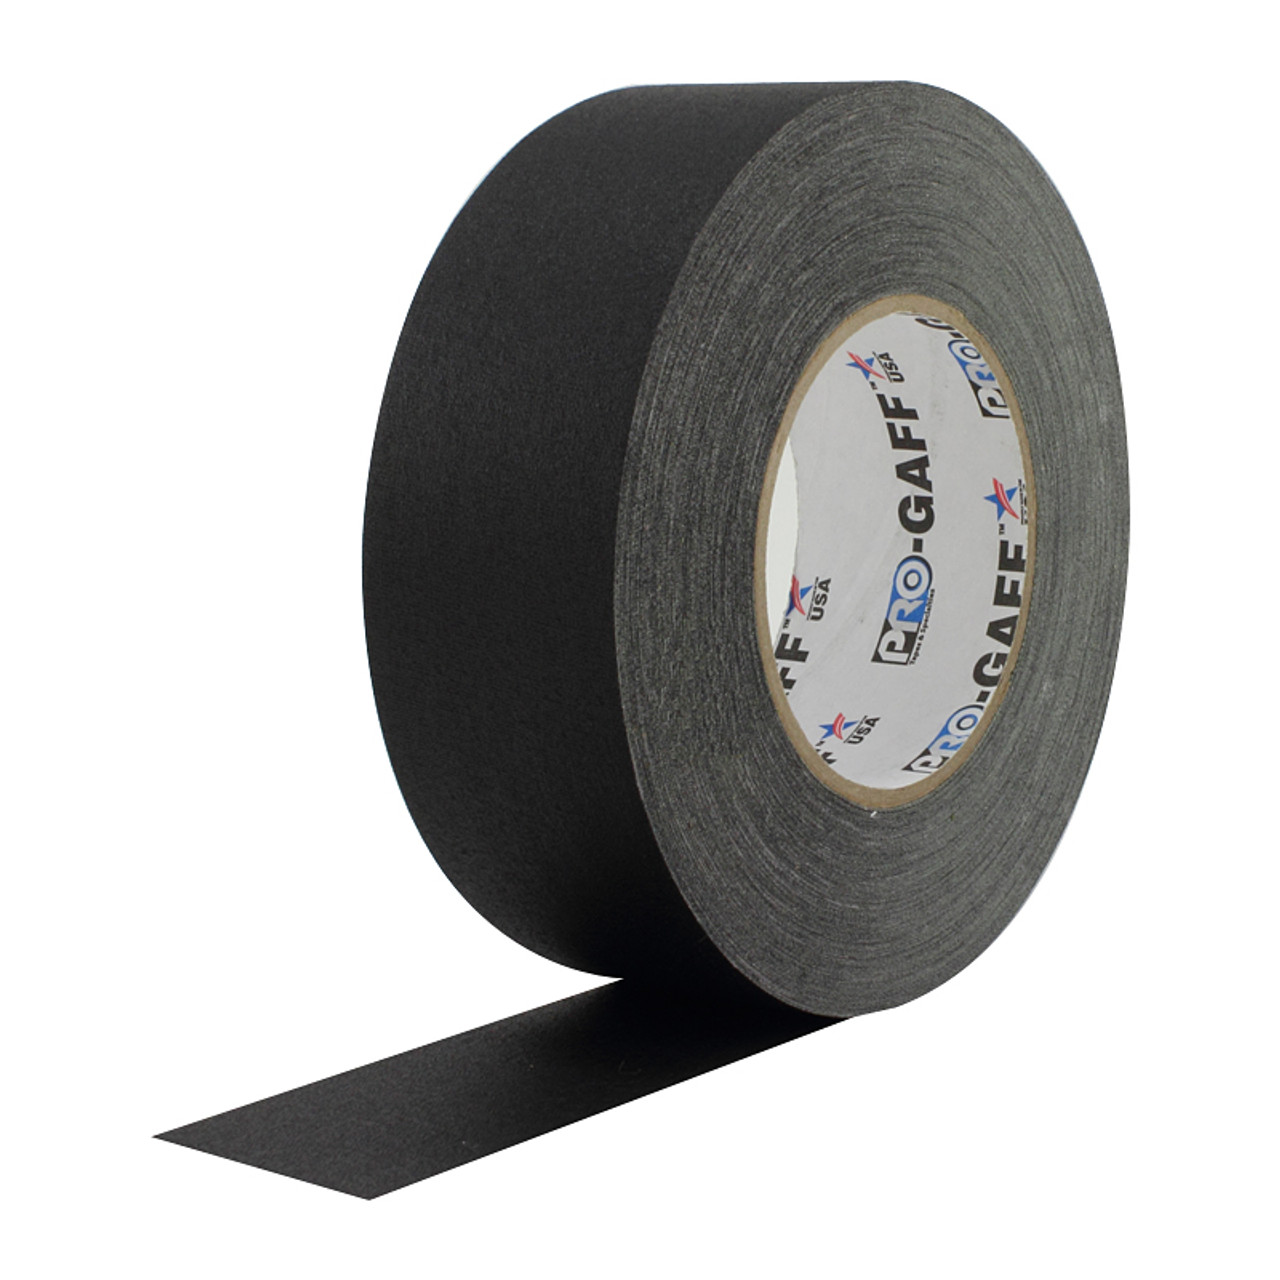 Pro Gaff Gray Gaffers Spike Tape 1//2 inch X 45 yds